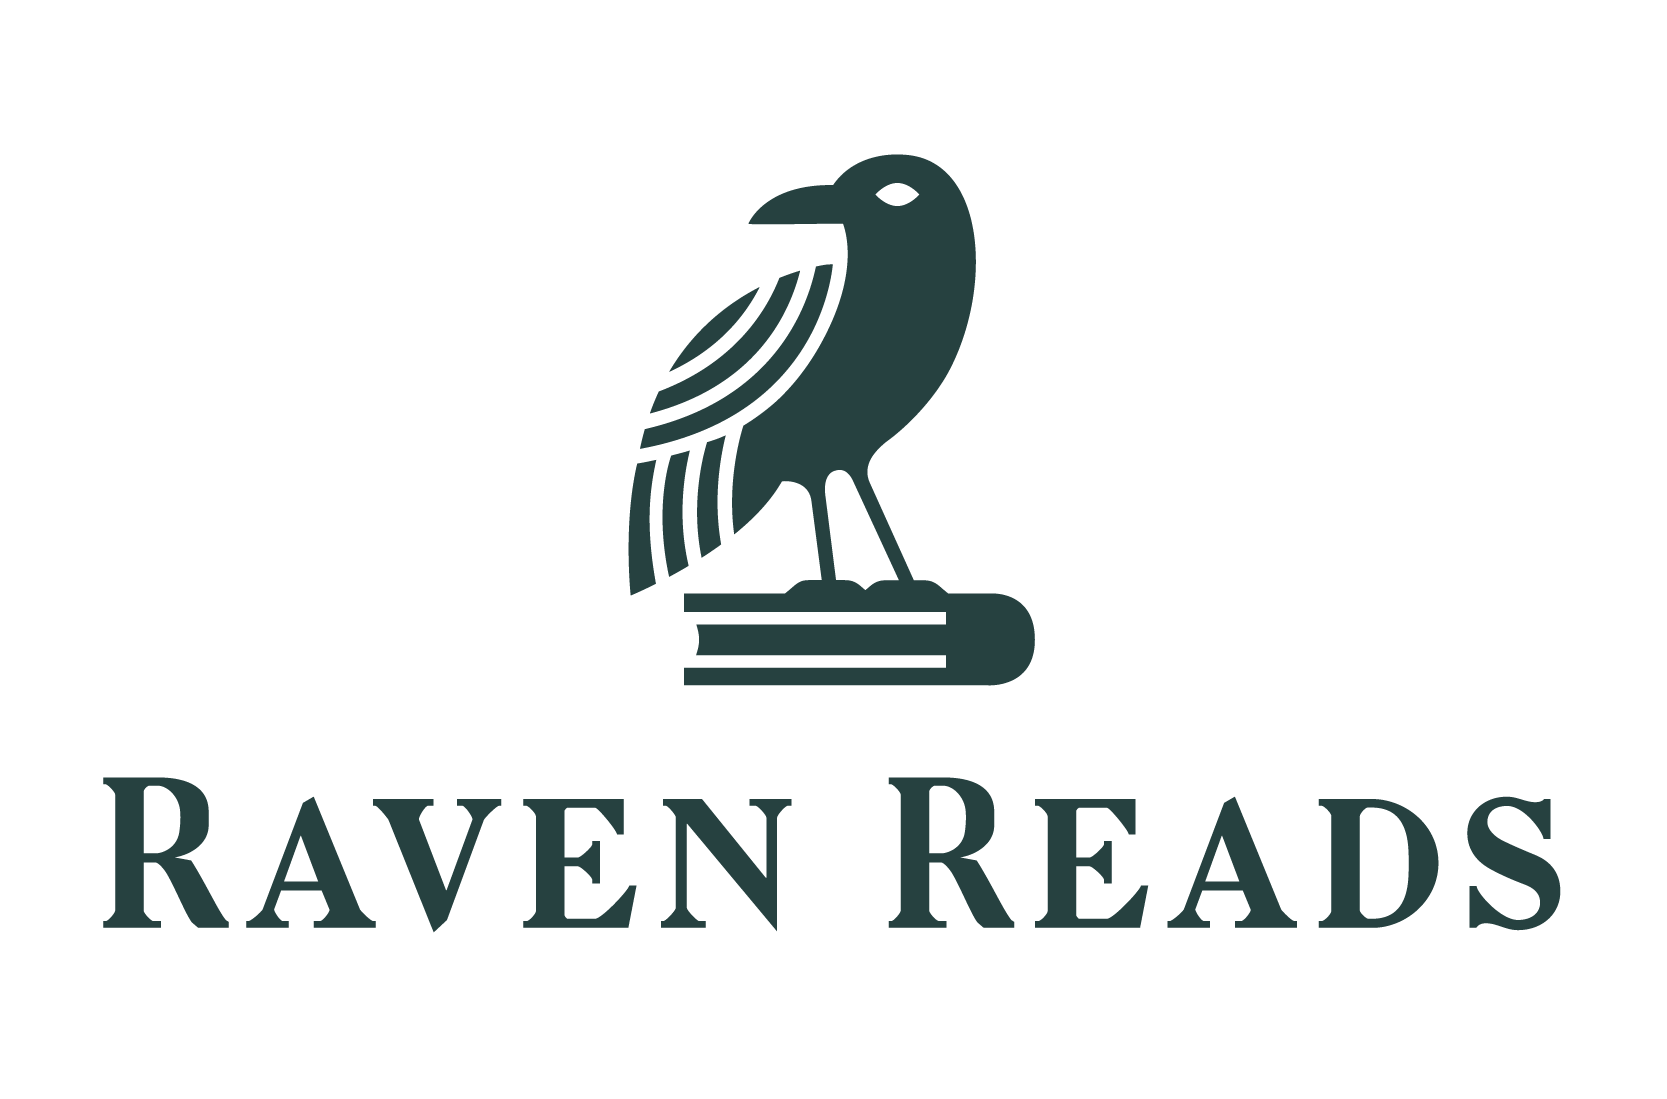 Raven Reads Books Ltd.